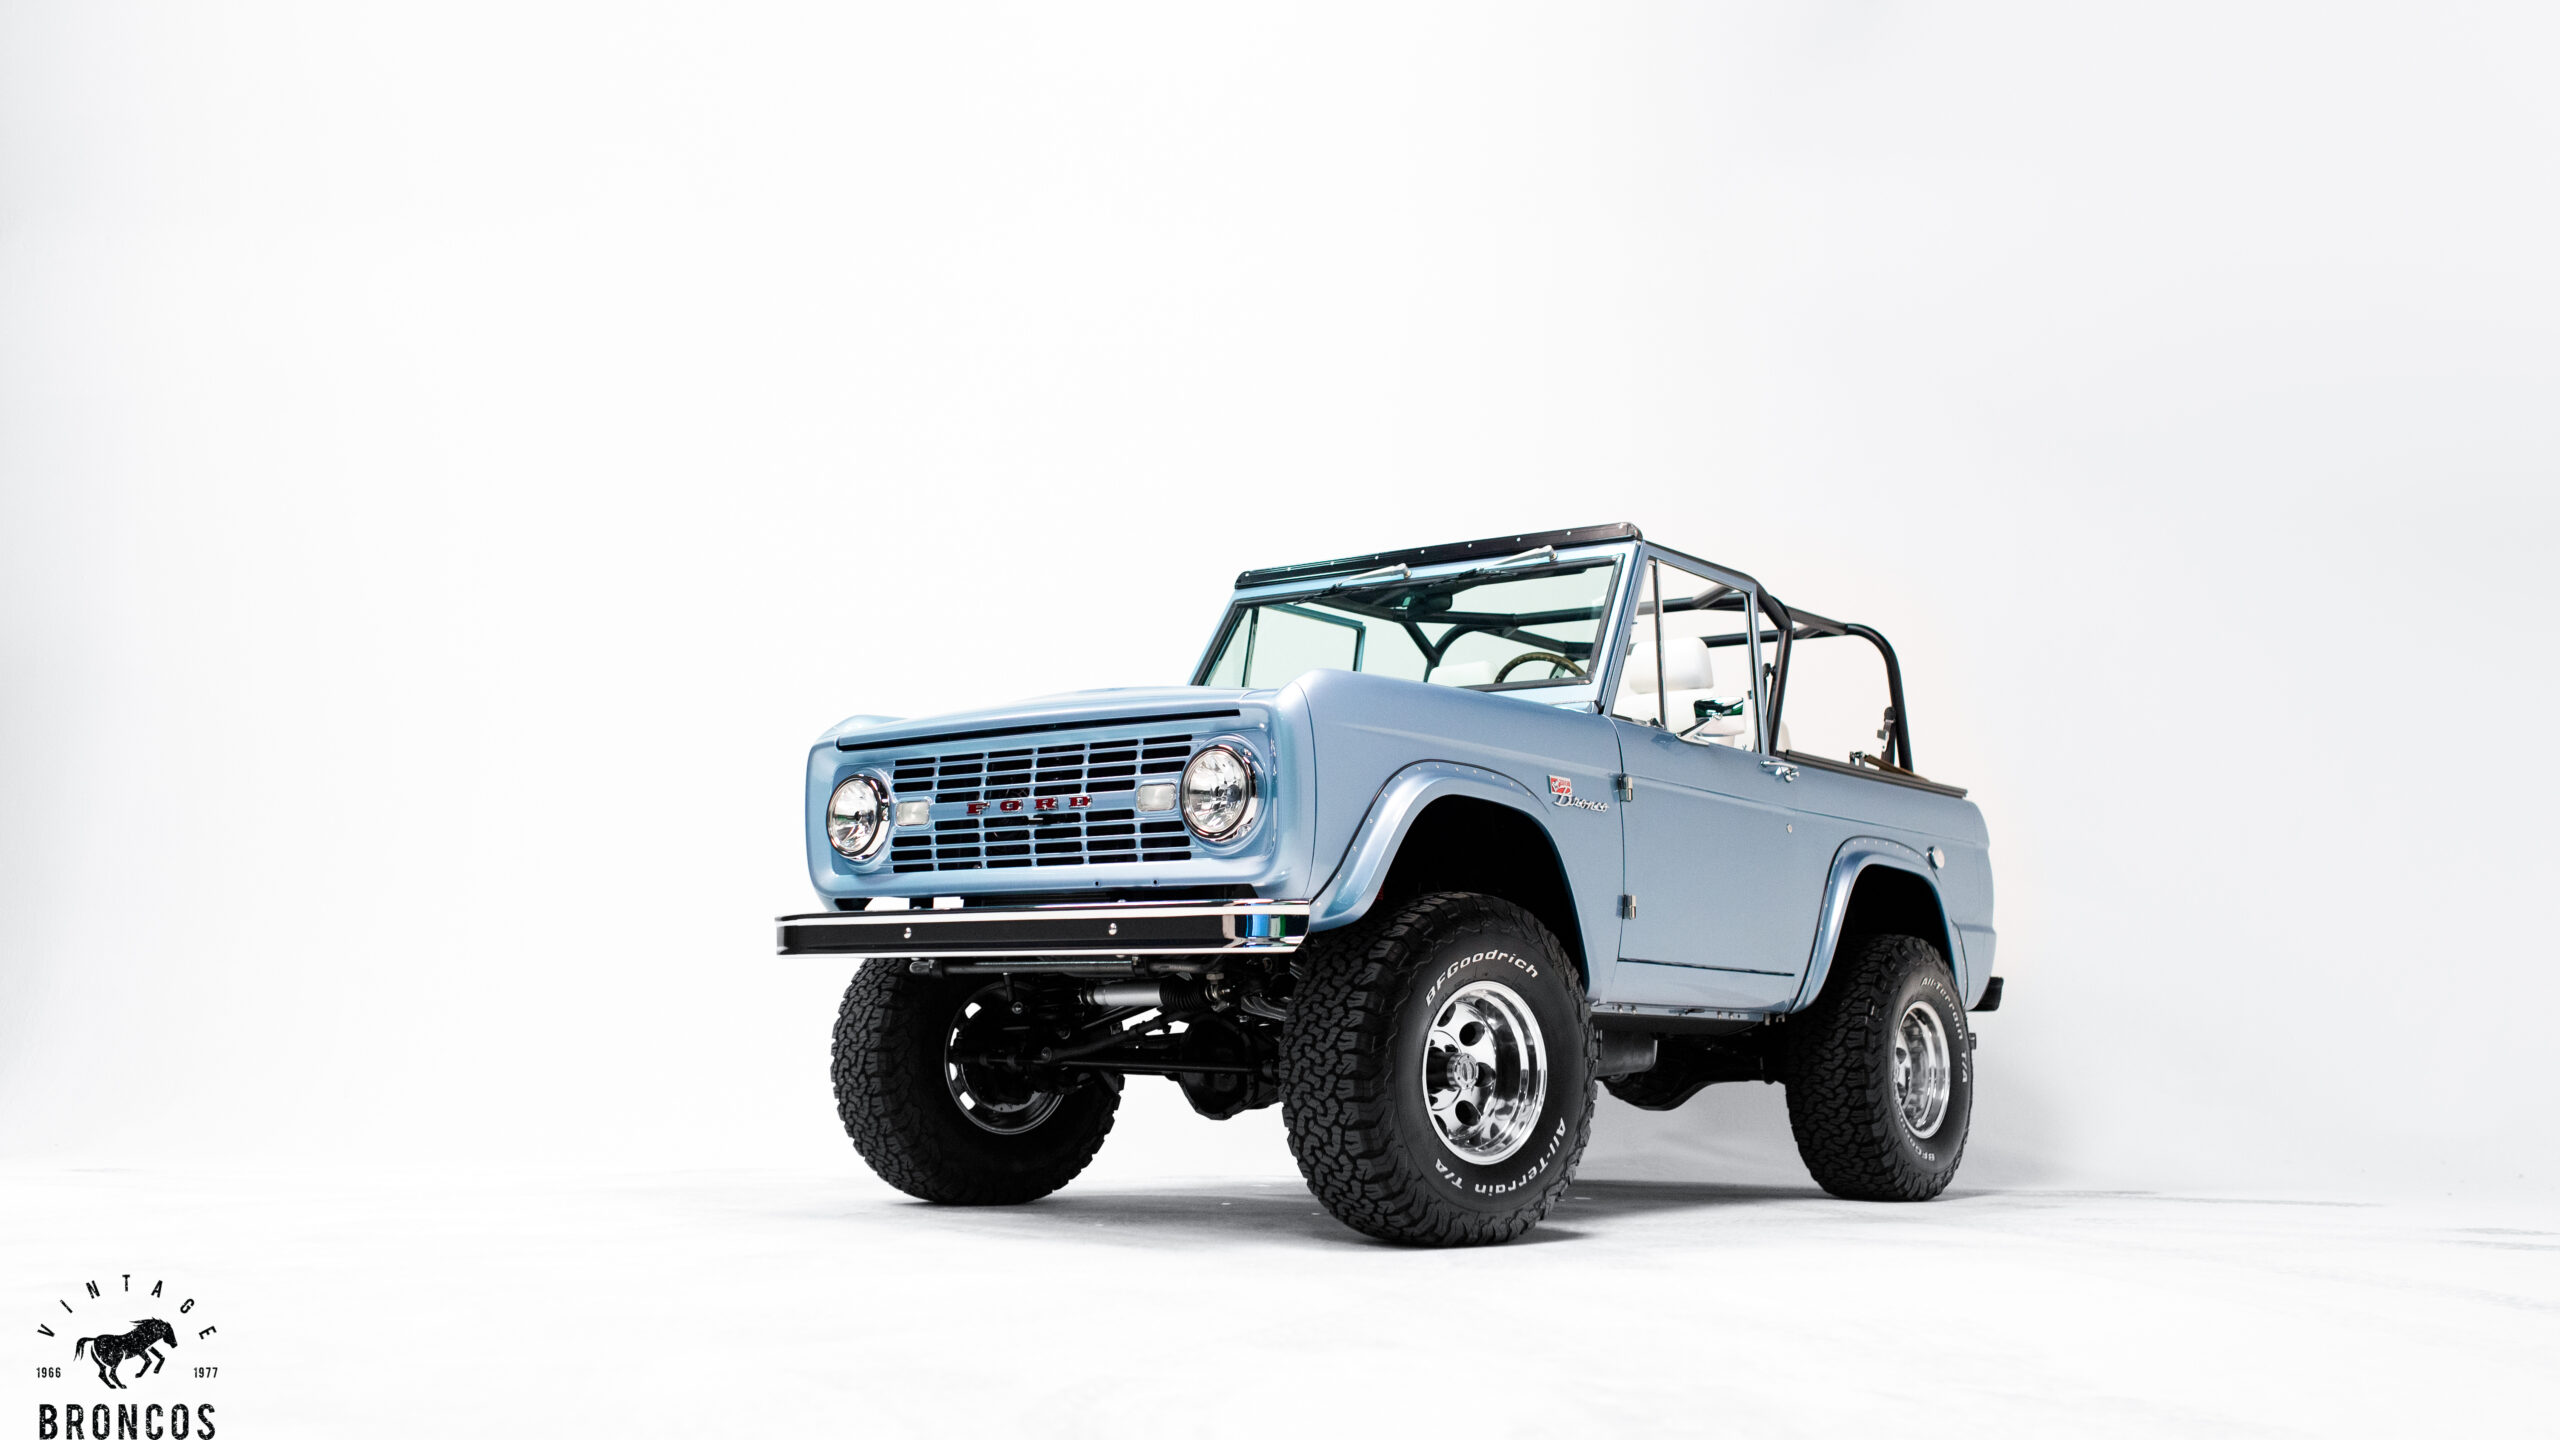 Brittany Blue Ford Bronco